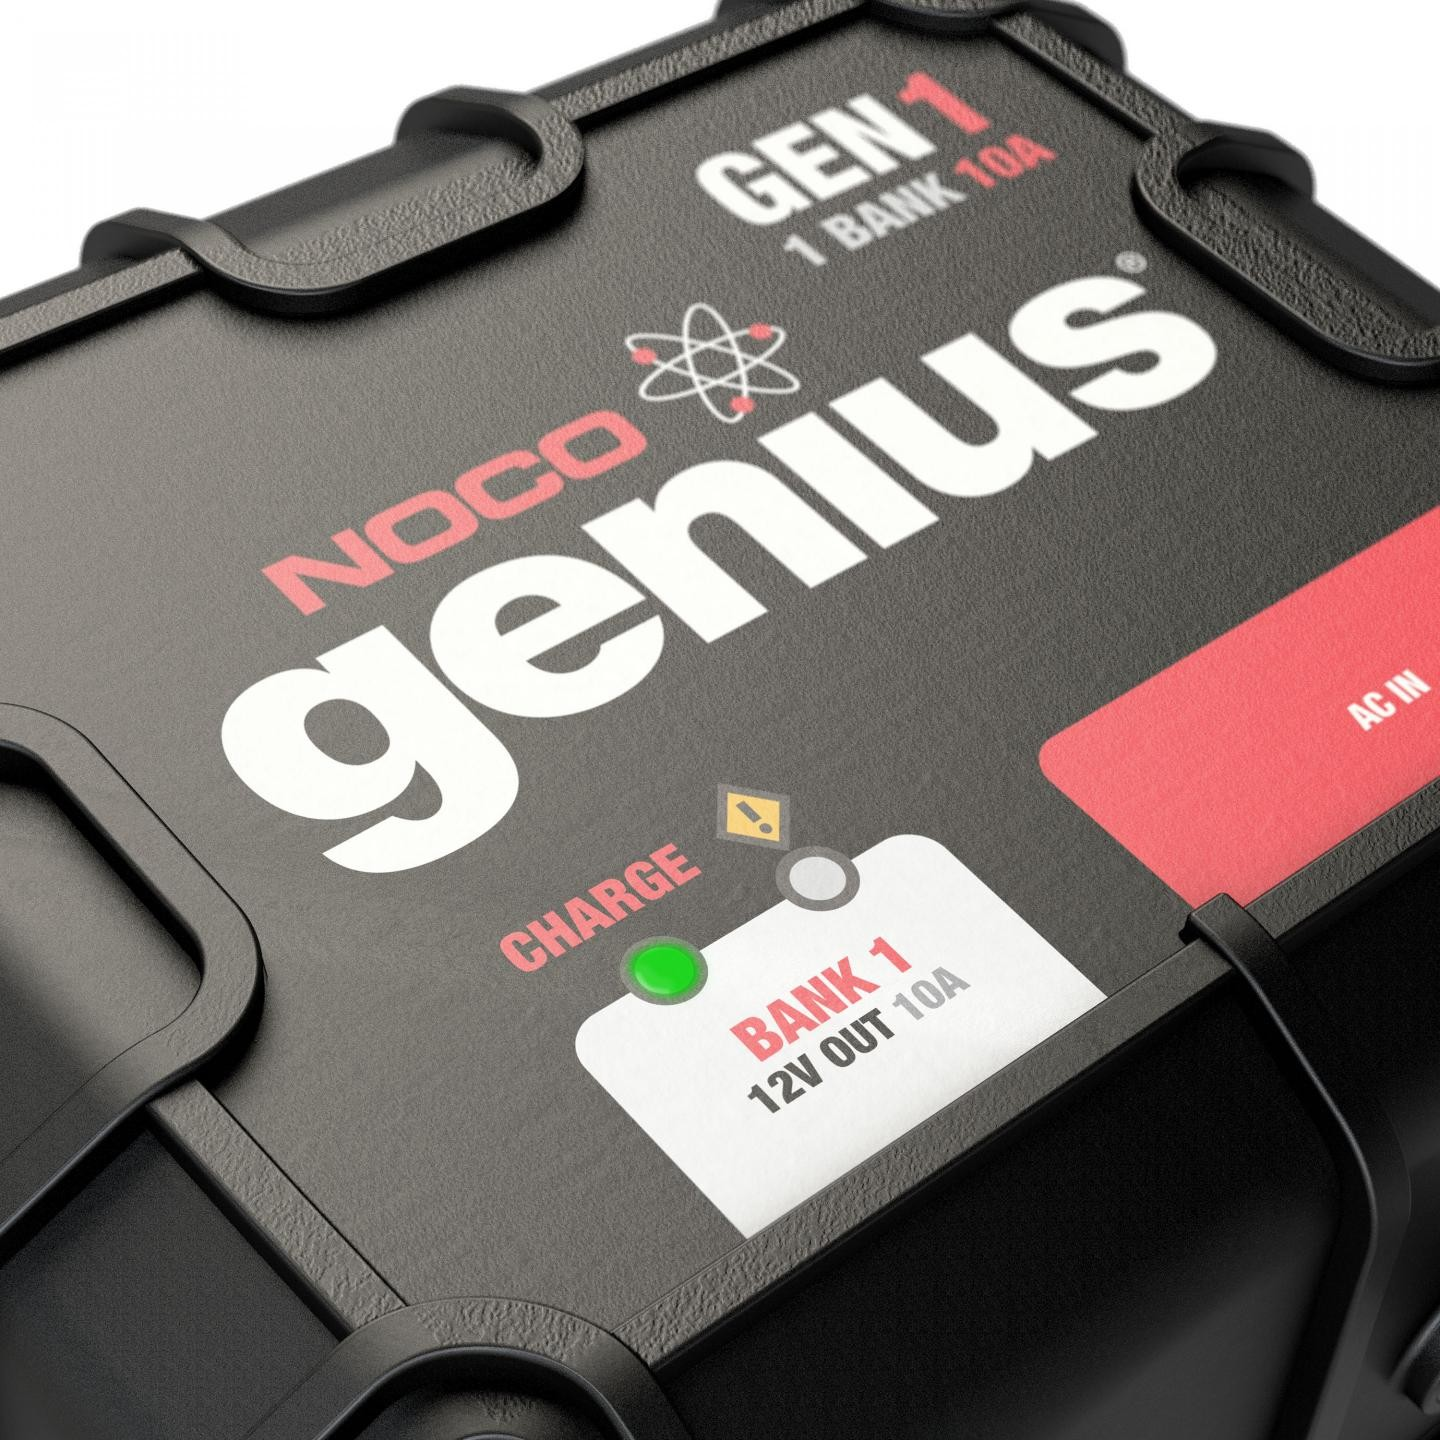 Noco 1 Bank 10a On Board Battery Charger Gen1 Requirement For The Proposed Desulfator With Circuit